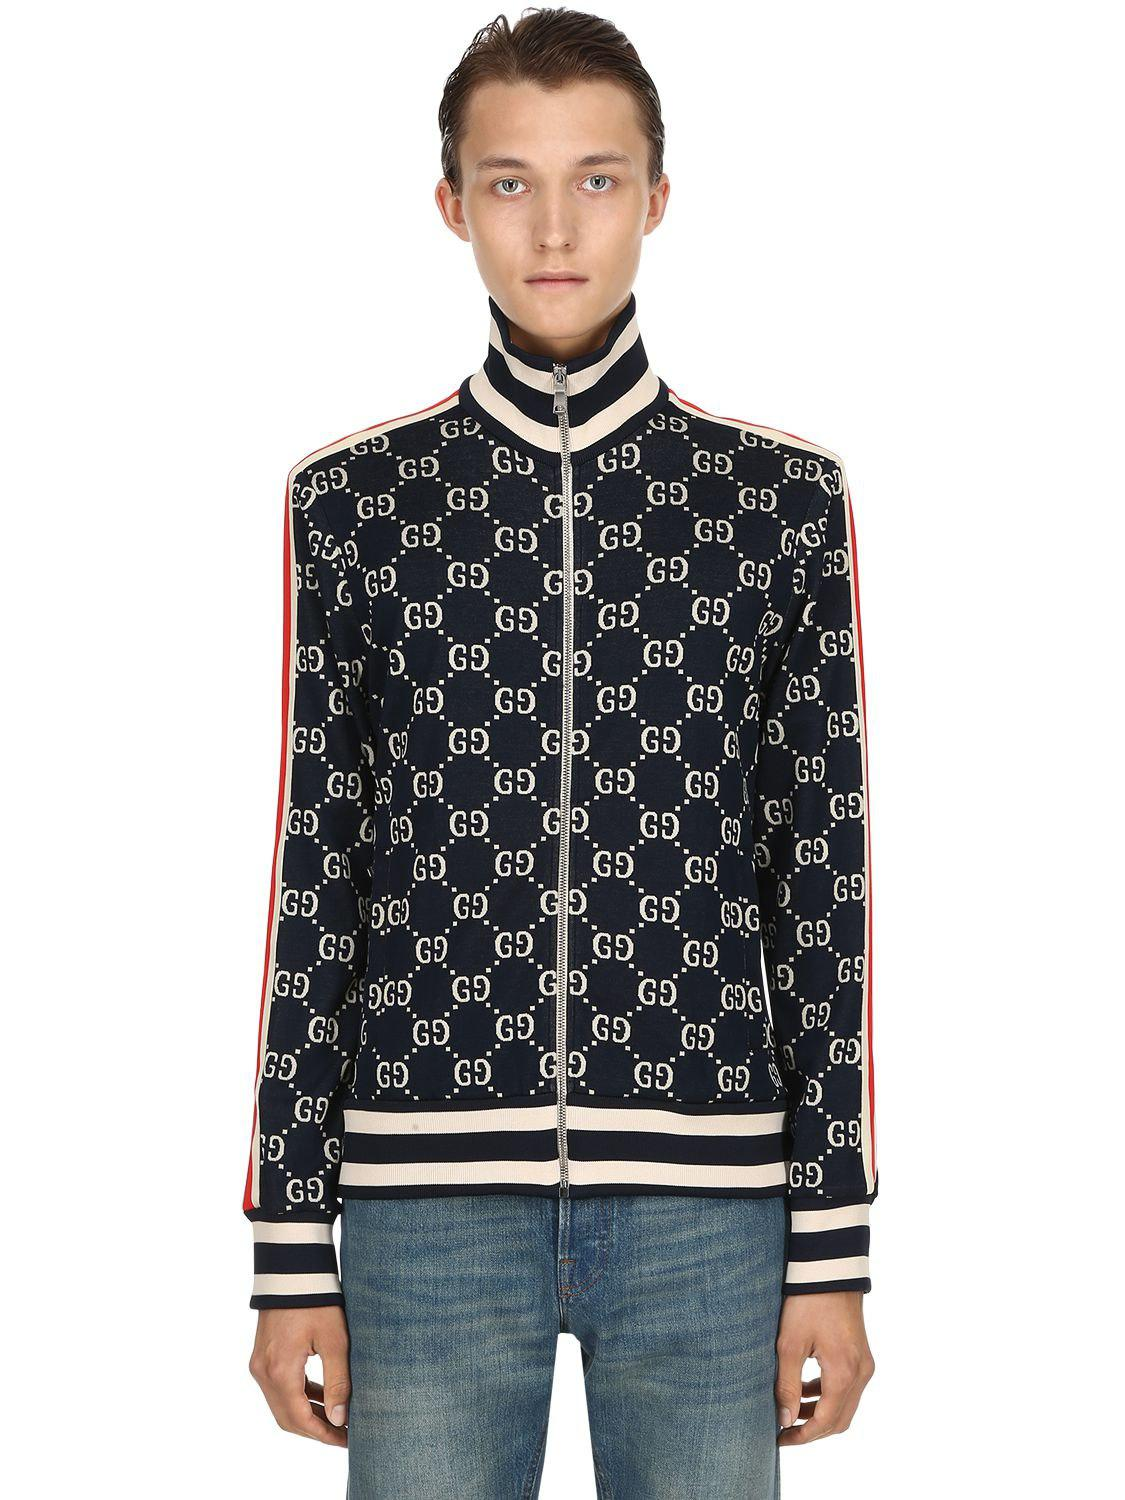 ac1ebe48f Gucci Jacquard Track Jacket in Blue for Men - Lyst